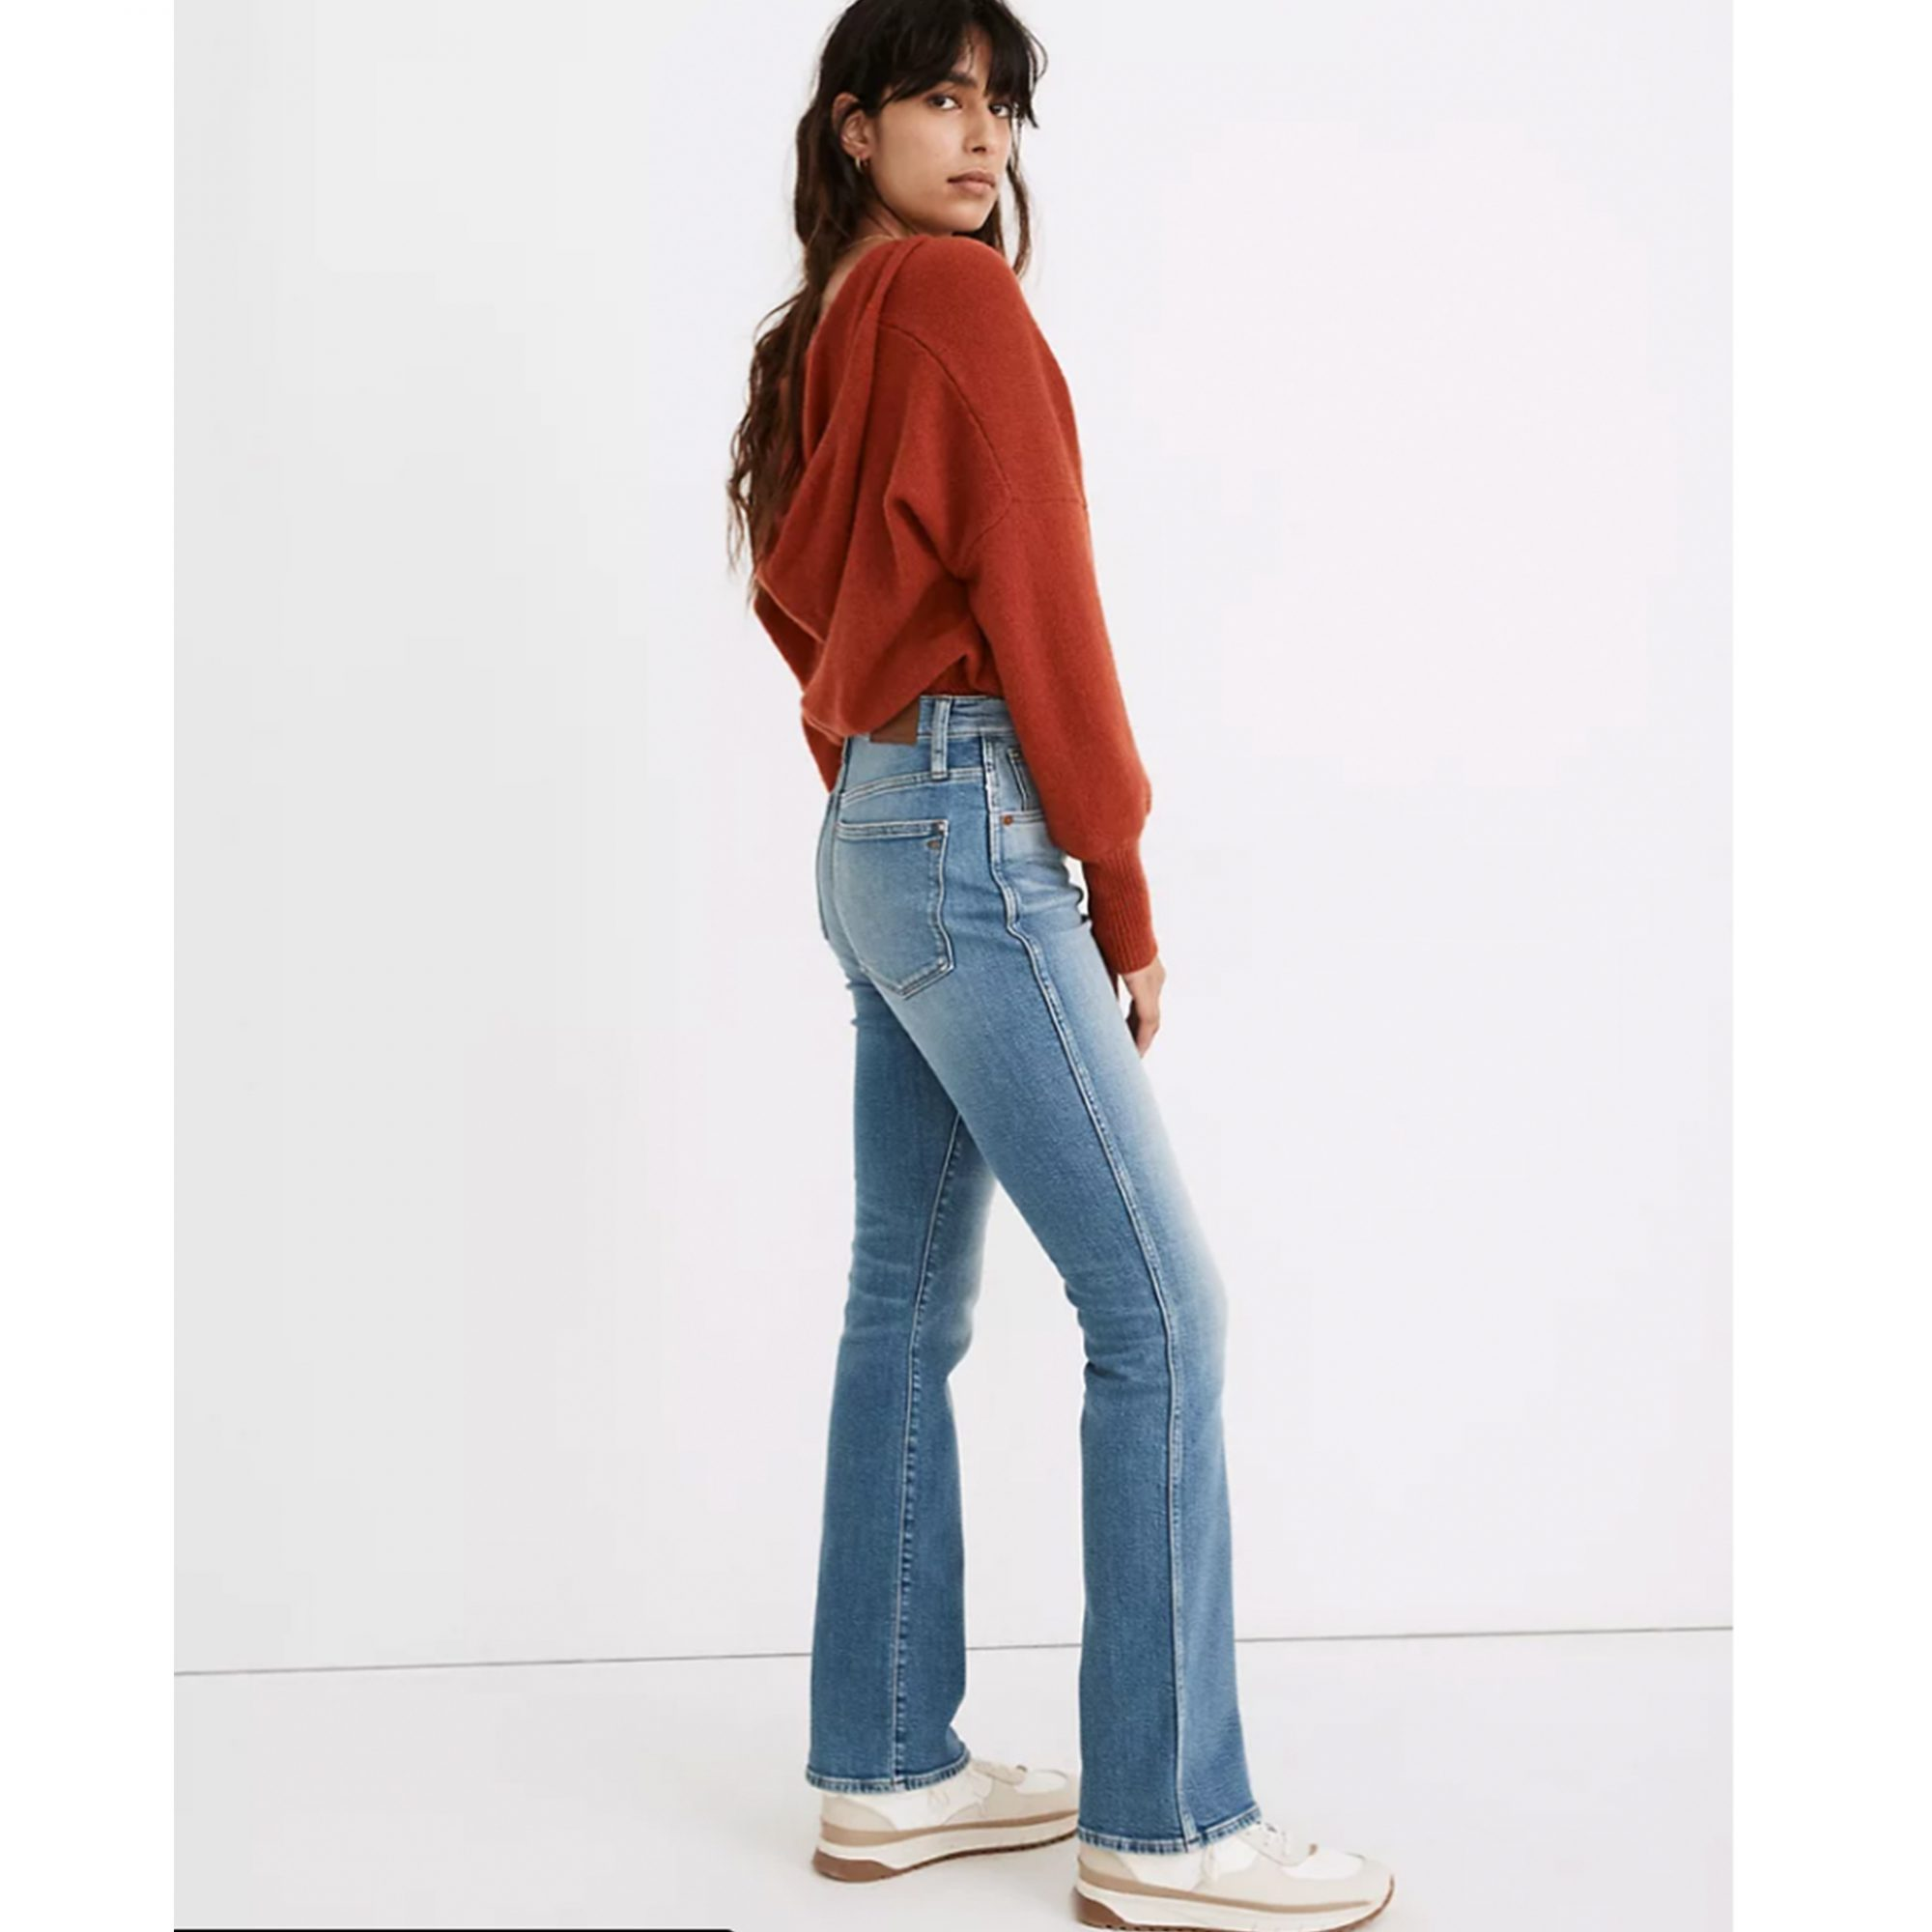 madewell-boot-cut-jeans